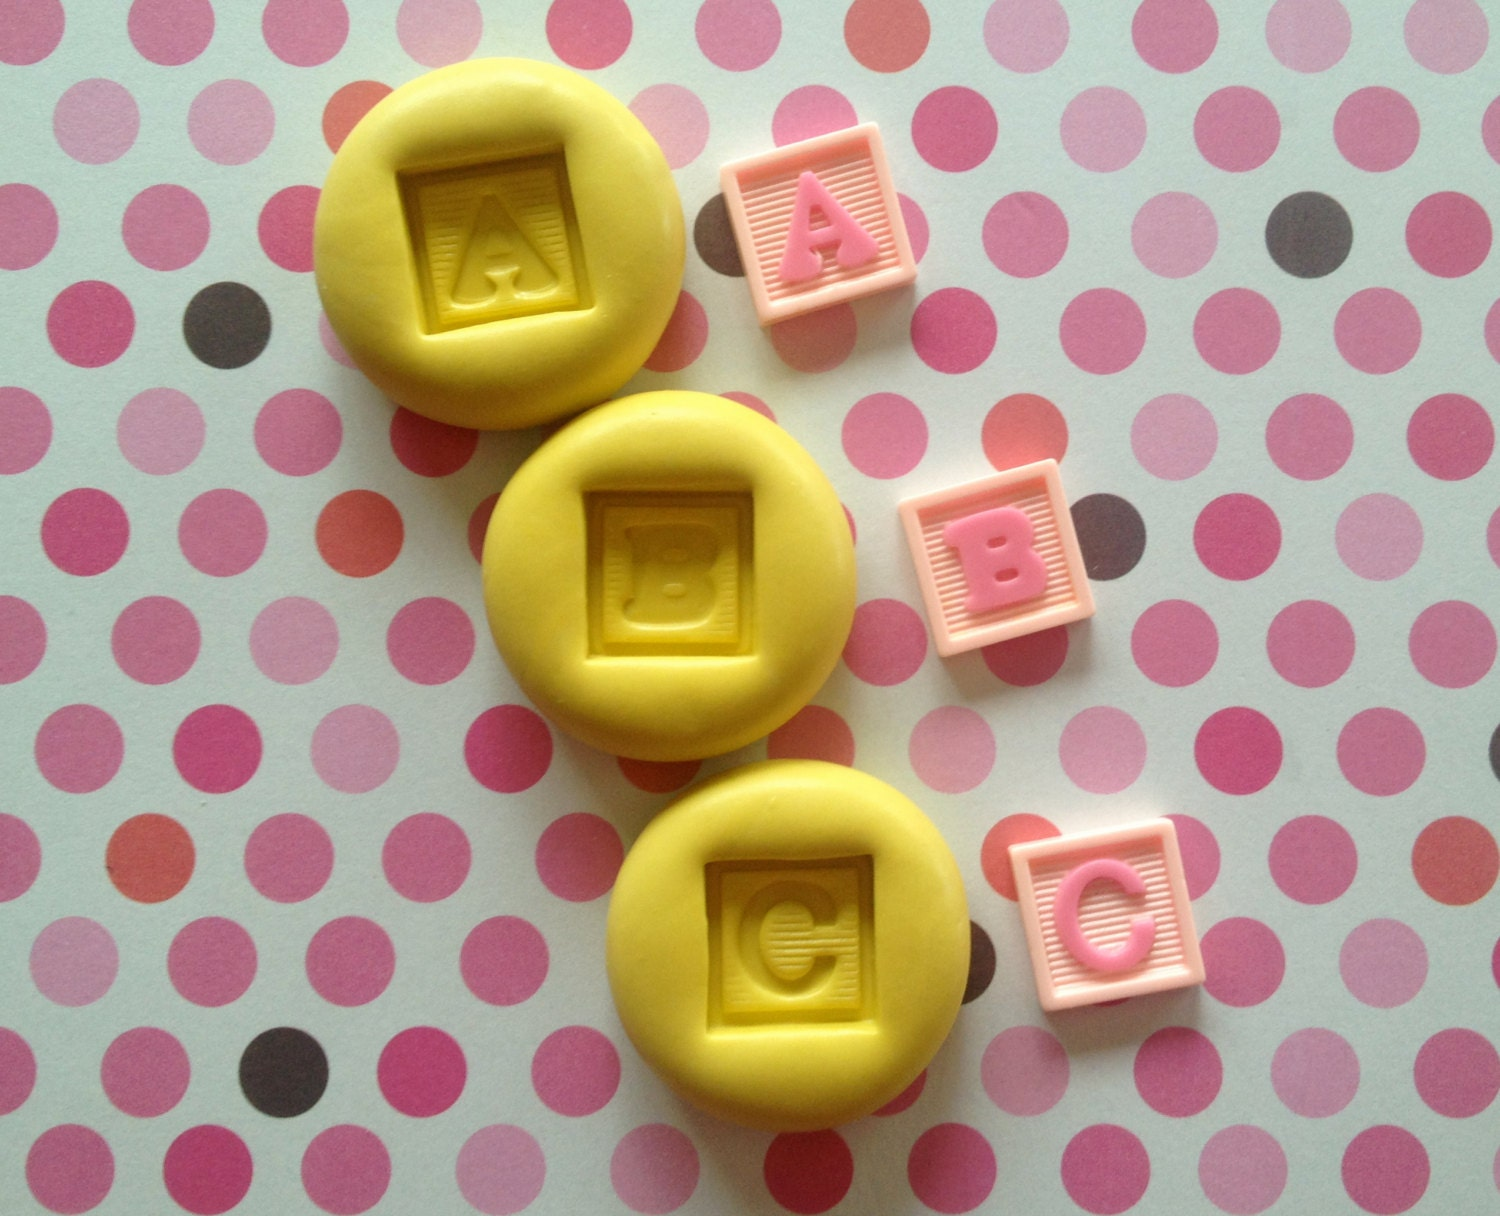 A B C Letters Baby BLOCK Silicone MOLD-Resin, A B C Block ...